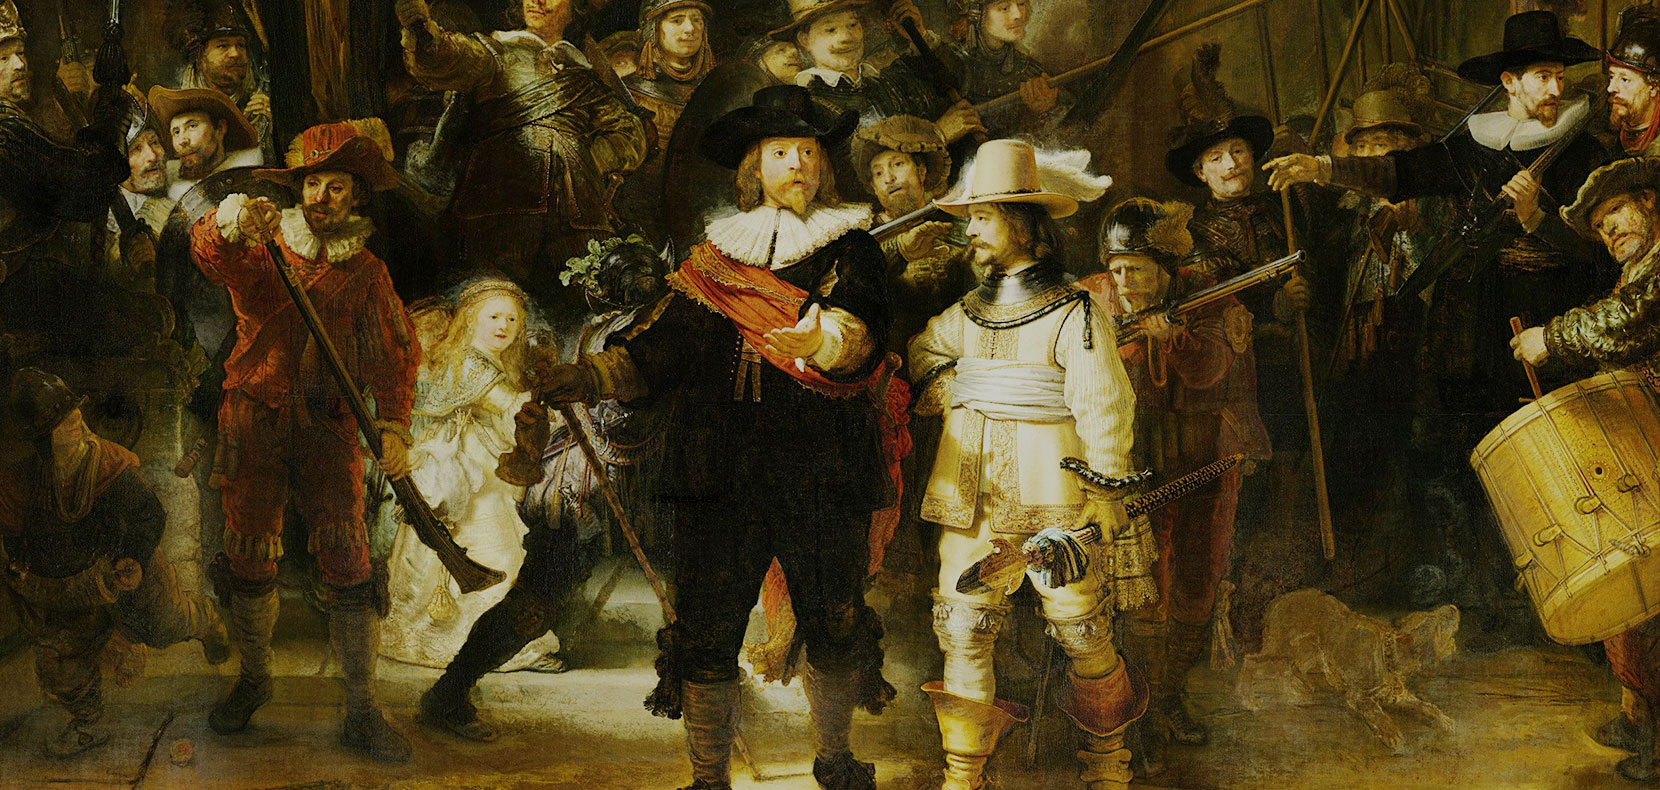 The Night watch as it can be seen at the Rijksmuseum in Amsterdam.